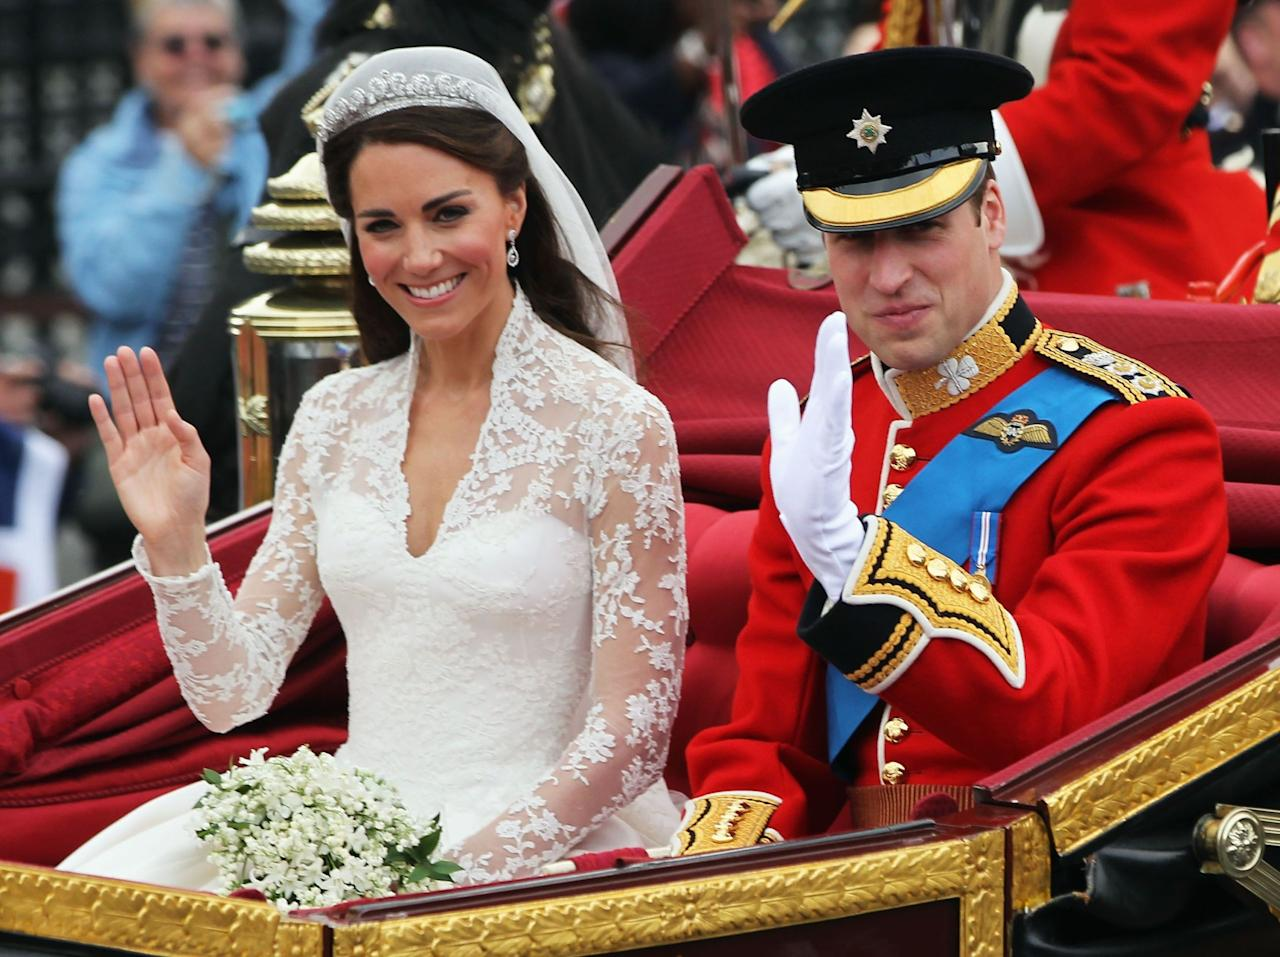 "<p>Apparently, Prince William only had a half hour of sleep before his wedding to Kate Middleton, and was completely exhausted the entire day. Why? A brutal combination of nerves and screaming fans camped outside his house.</p><p>""They were singing and cheering all night long, so the excitement of that, the nervousness of me and everyone singing, I slept for about half an hour,"" he <a rel=""nofollow"" href=""http://www.dailymail.co.uk/news/article-2147896/Prince-William-slept-just-half-hour-eve-Royal-Wedding.html"">said</a>. Fortunately, William managed to get through his wedding day without falling asleep.</p>"